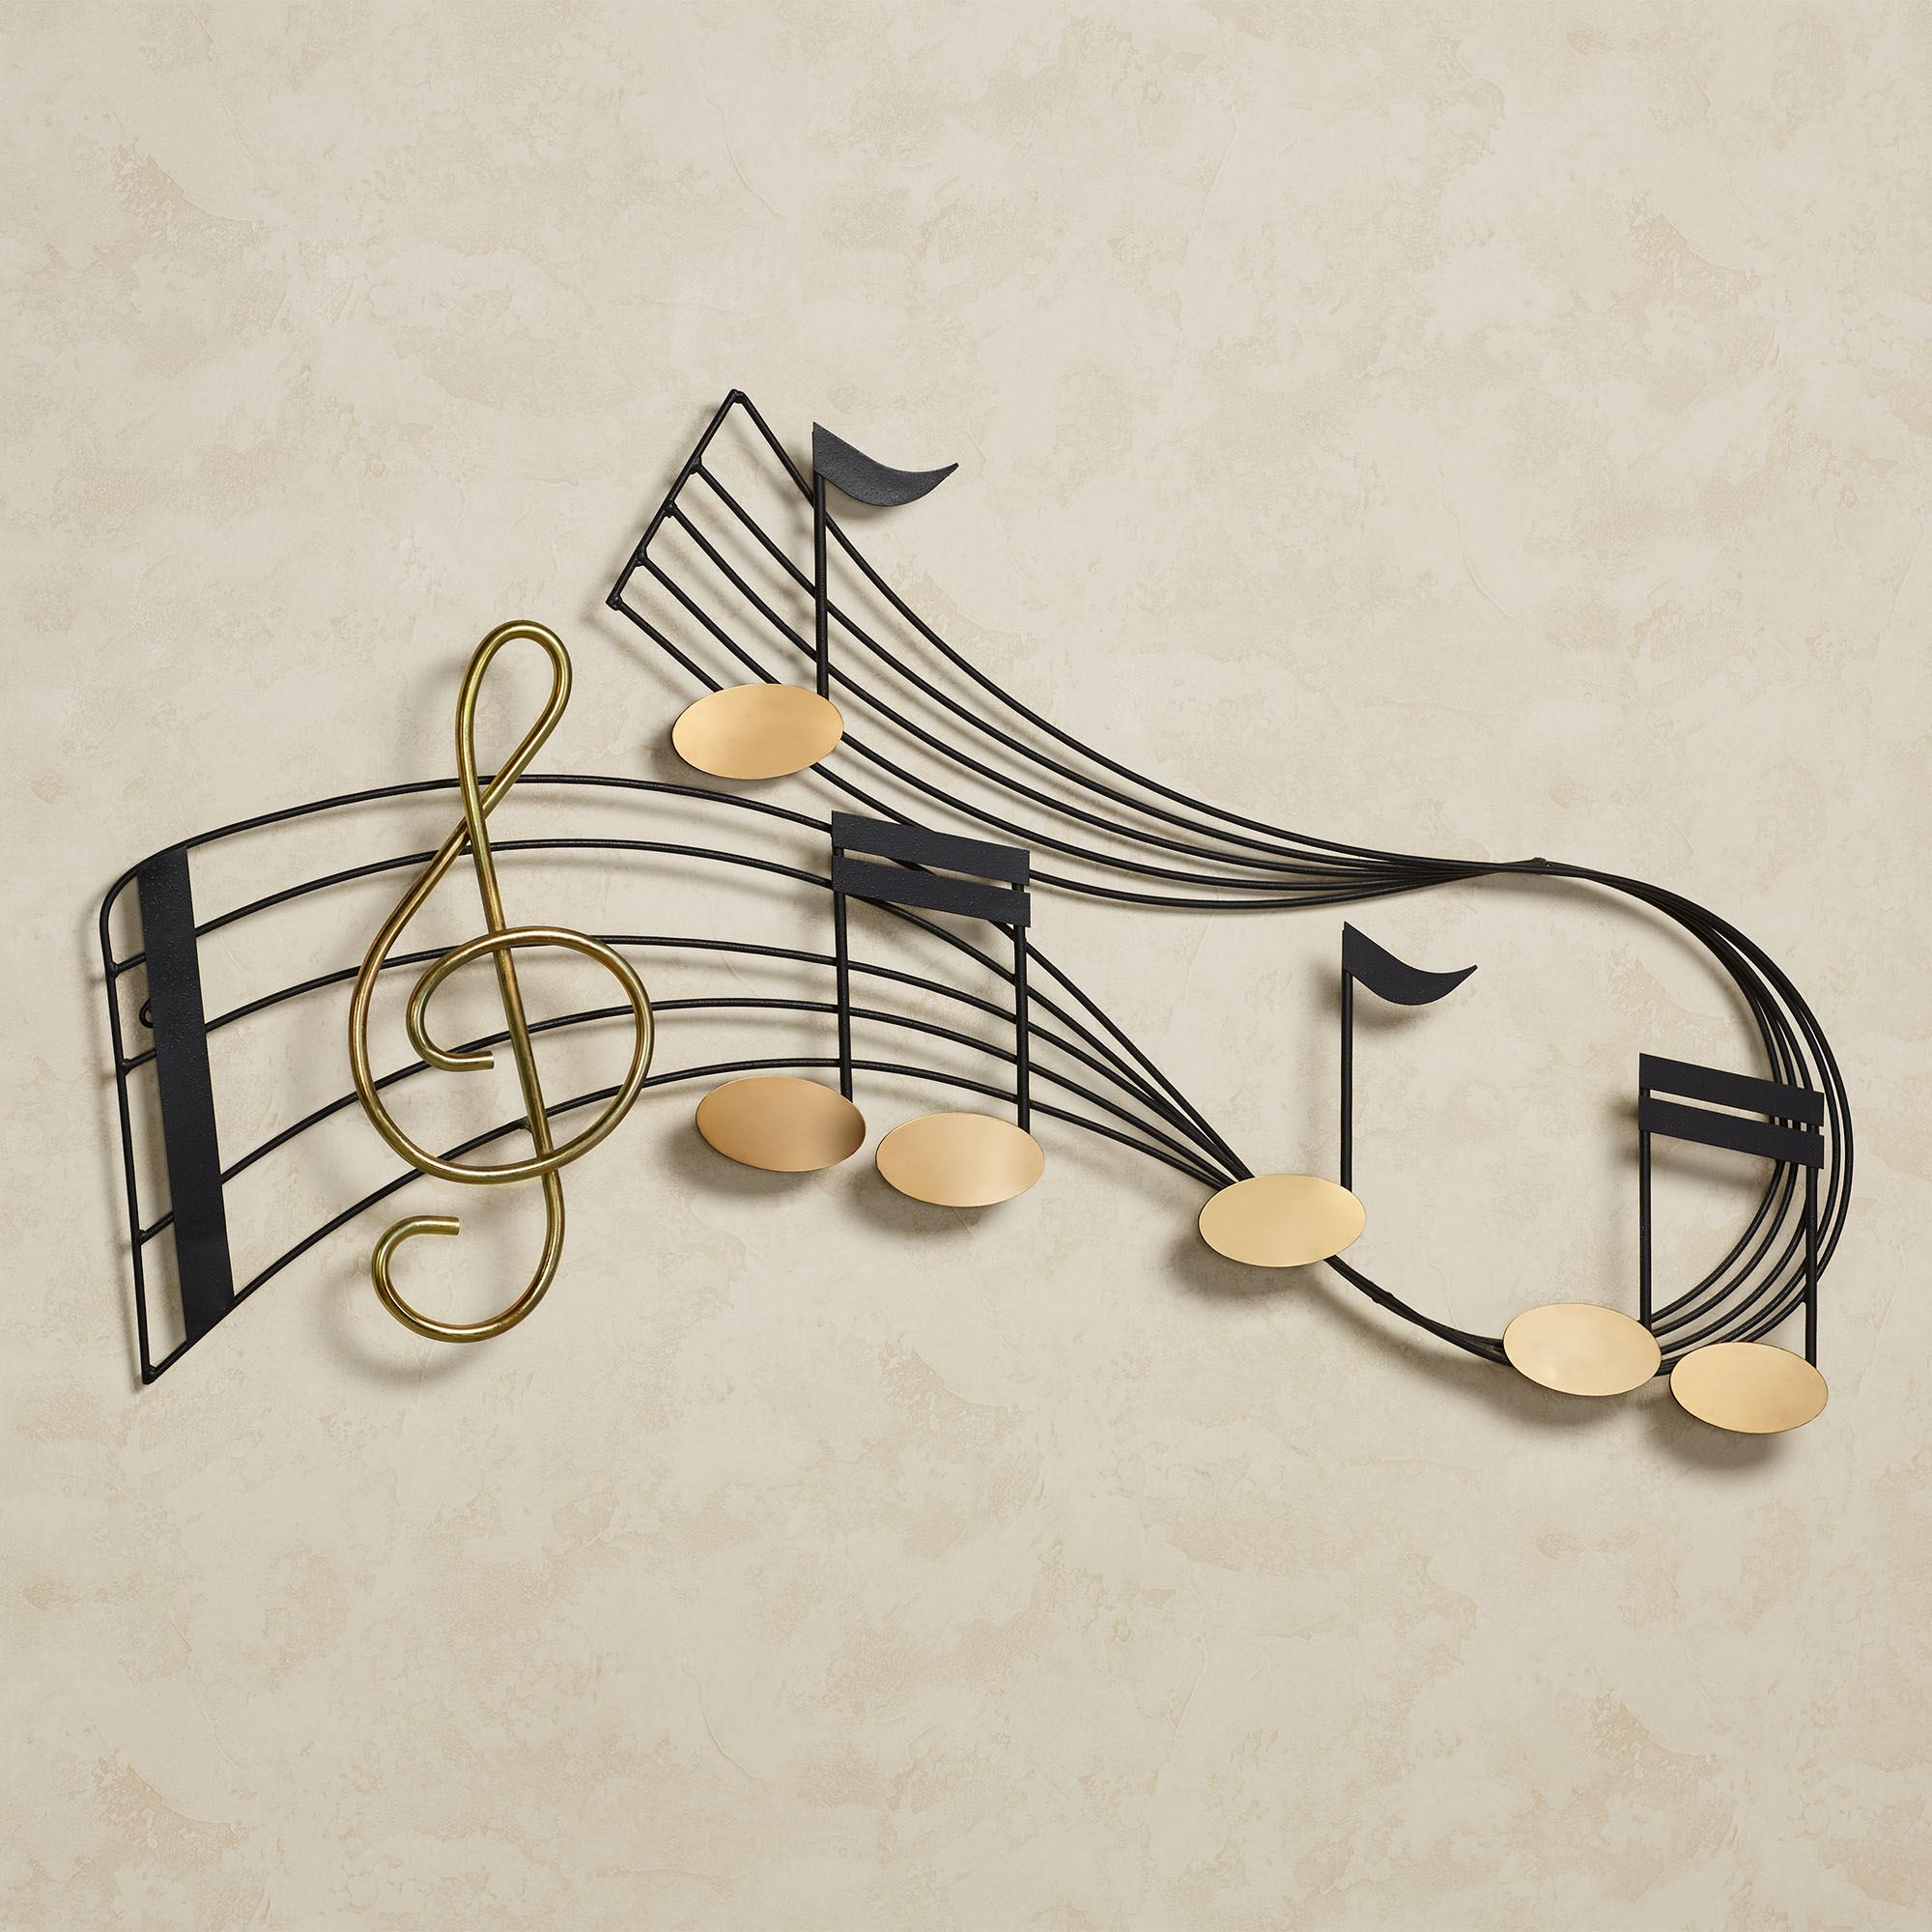 Metal Music Wall Art Rhythm Music Staff Metal Wall Sculpture